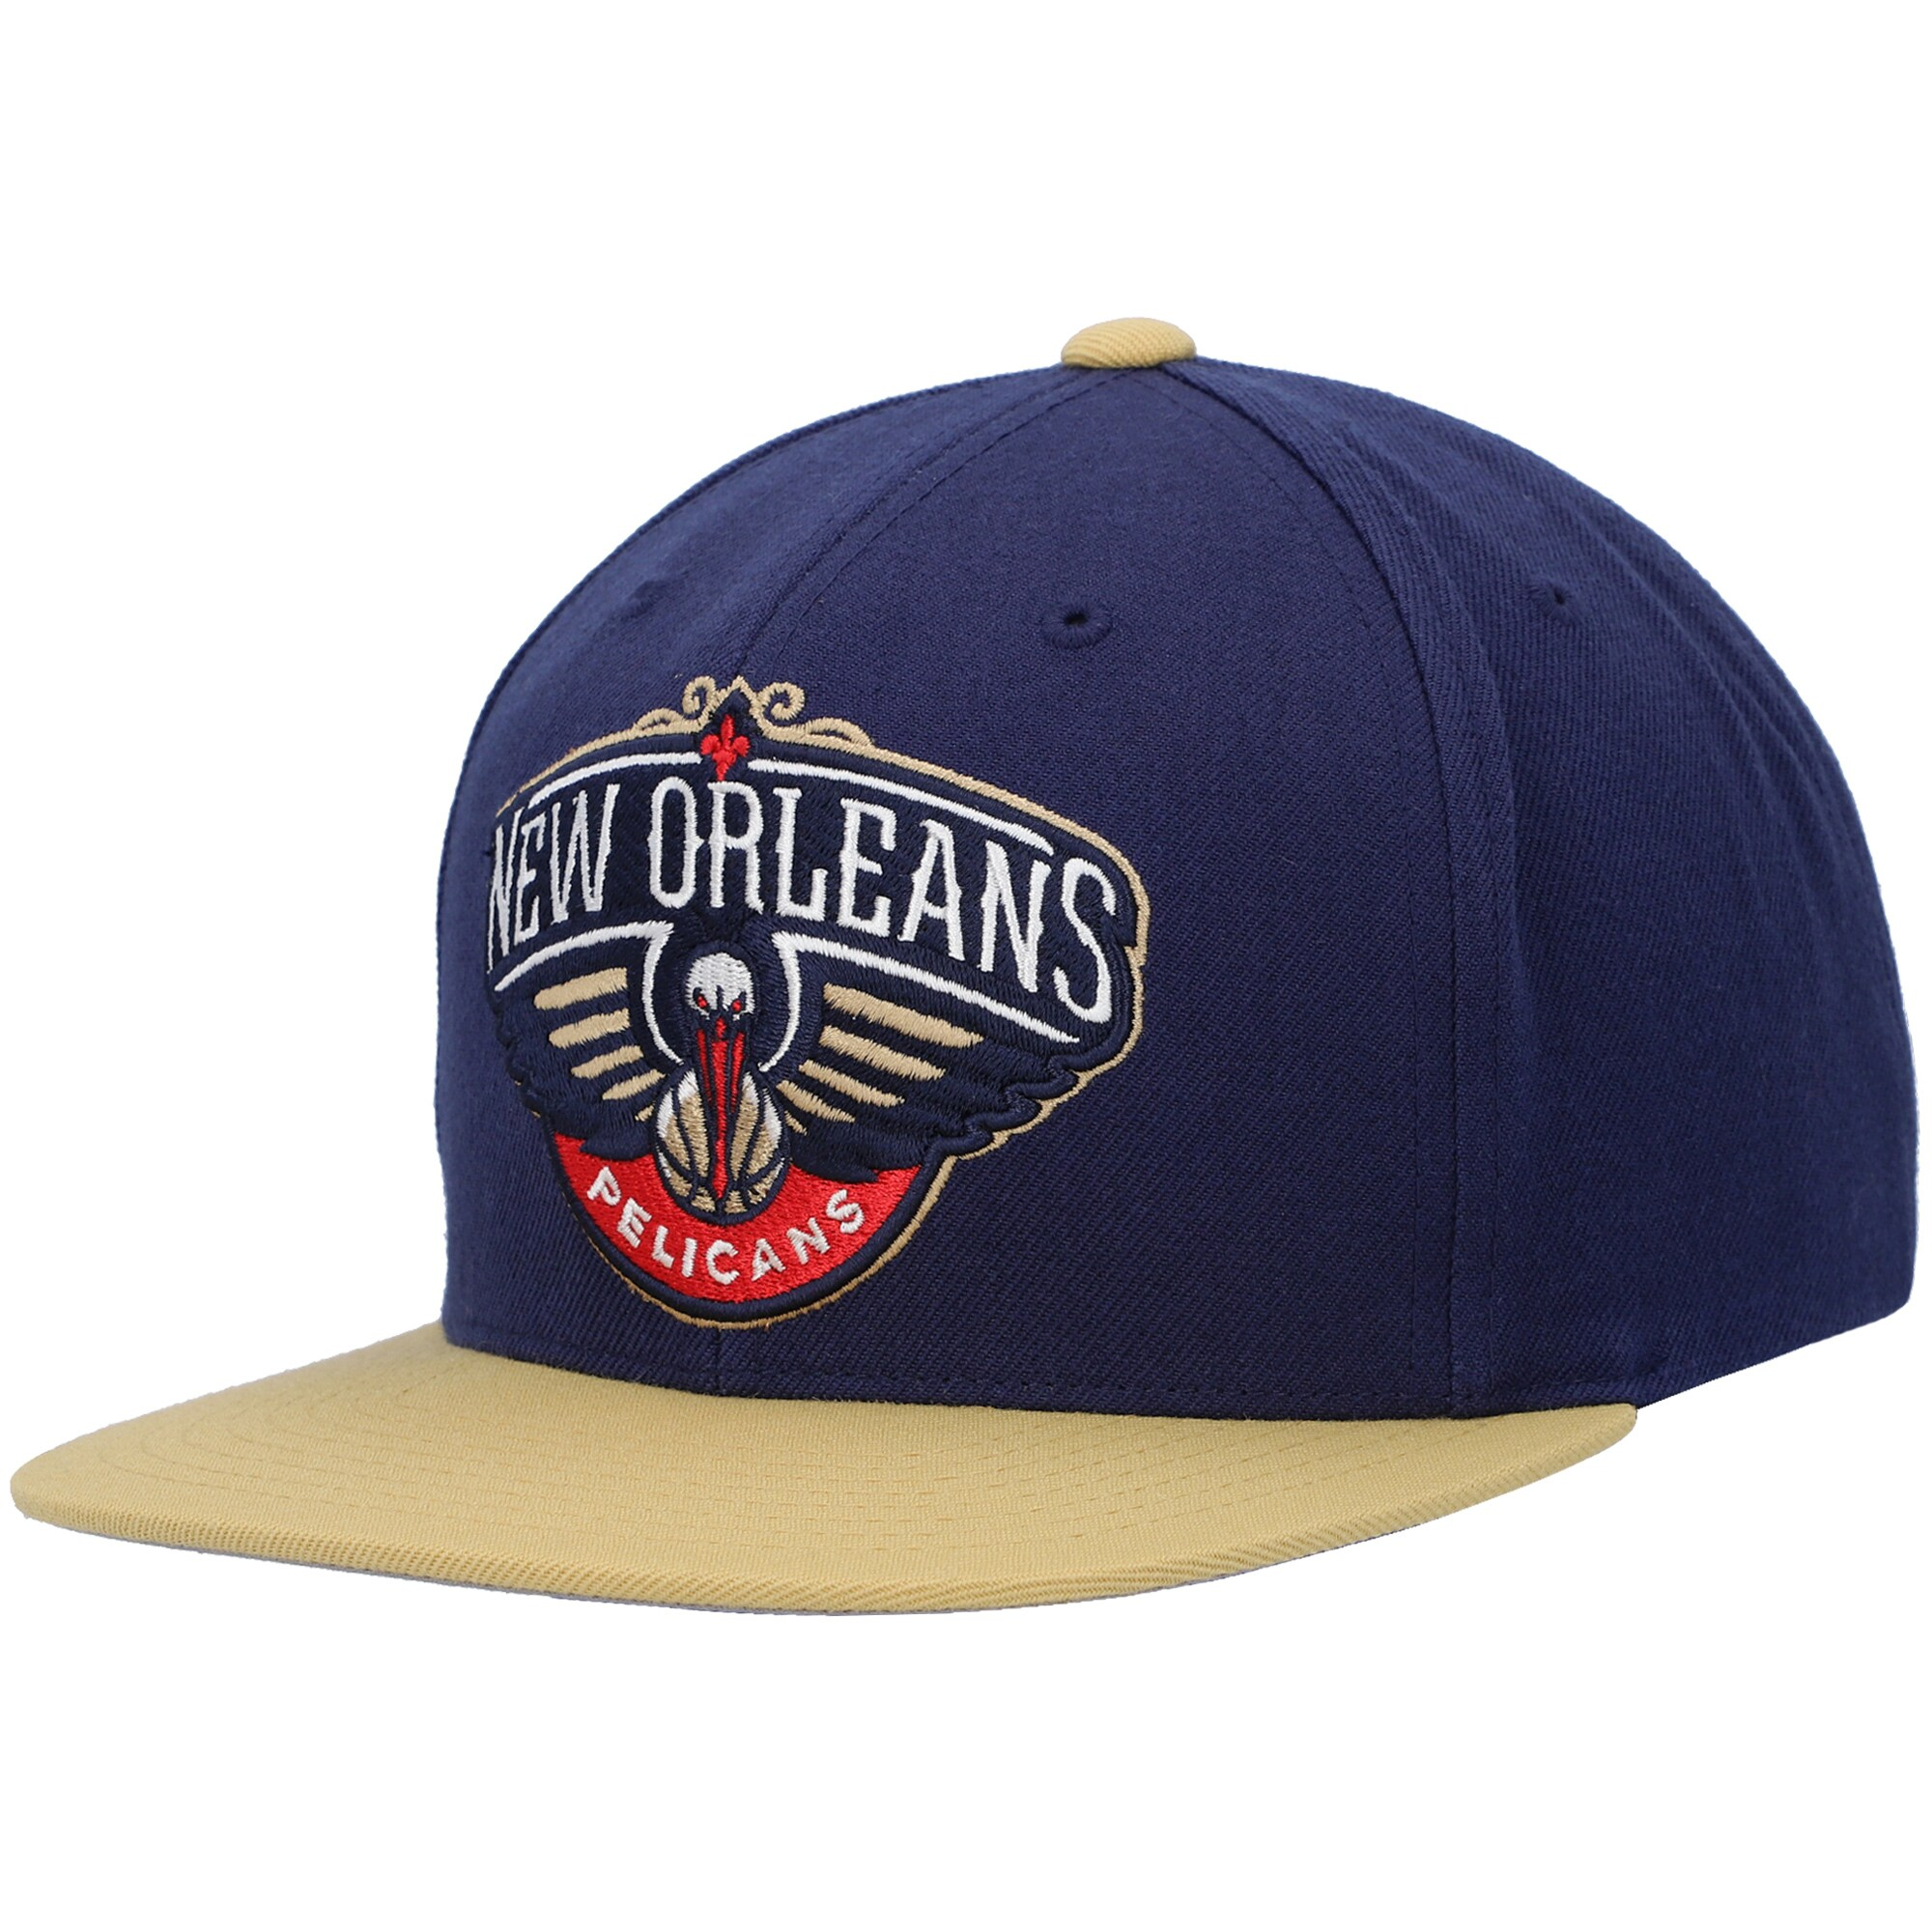 New Orleans Pelicans Mitchell & Ness Two-Tone Wool Snapback Hat - Navy/Gold